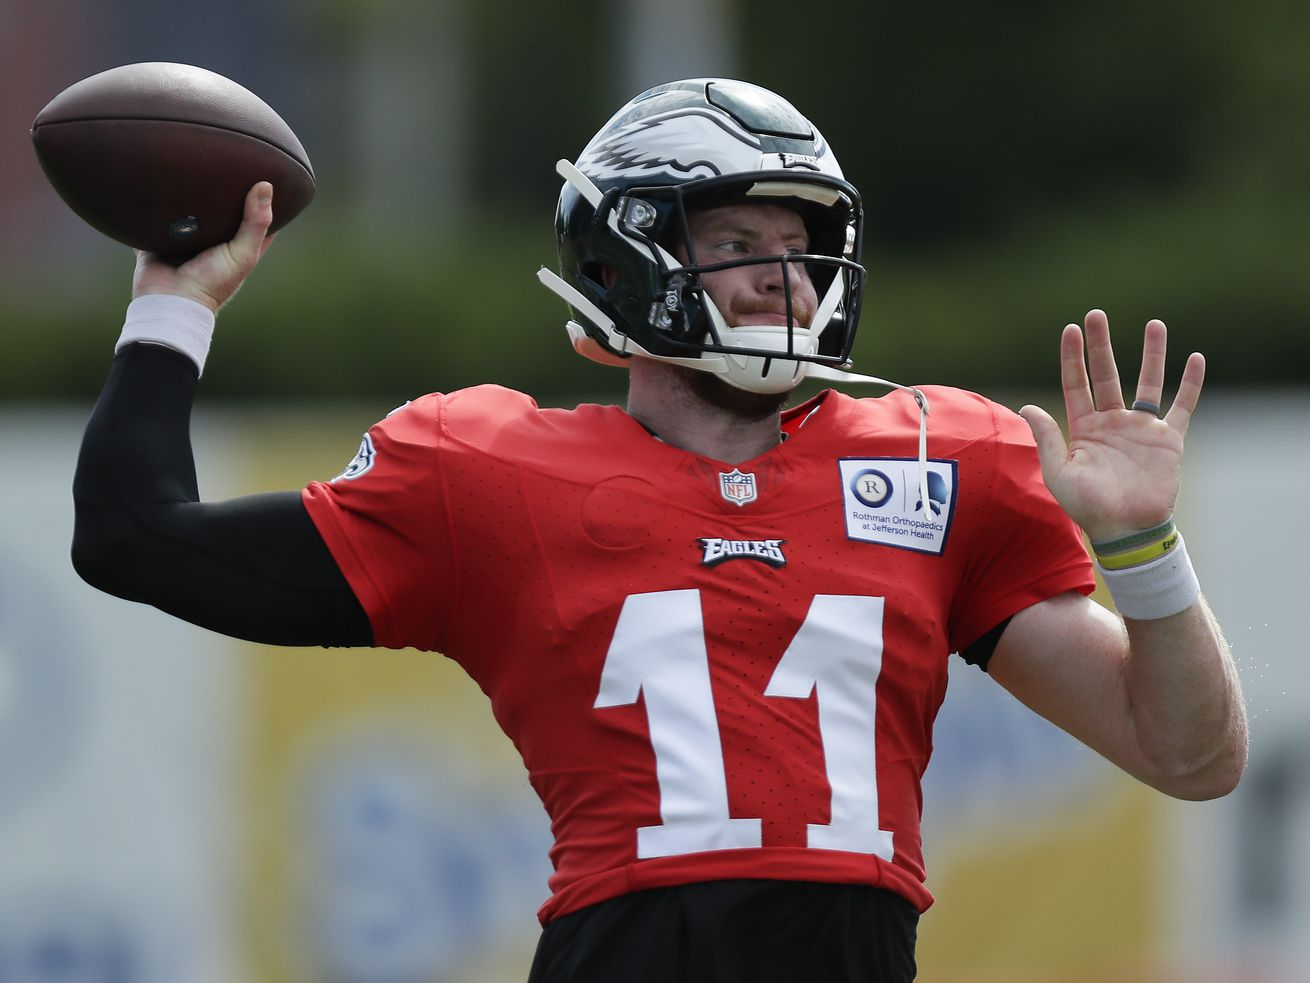 FANTASY FOOTBALL: Players to start and sit for NFL Week 1